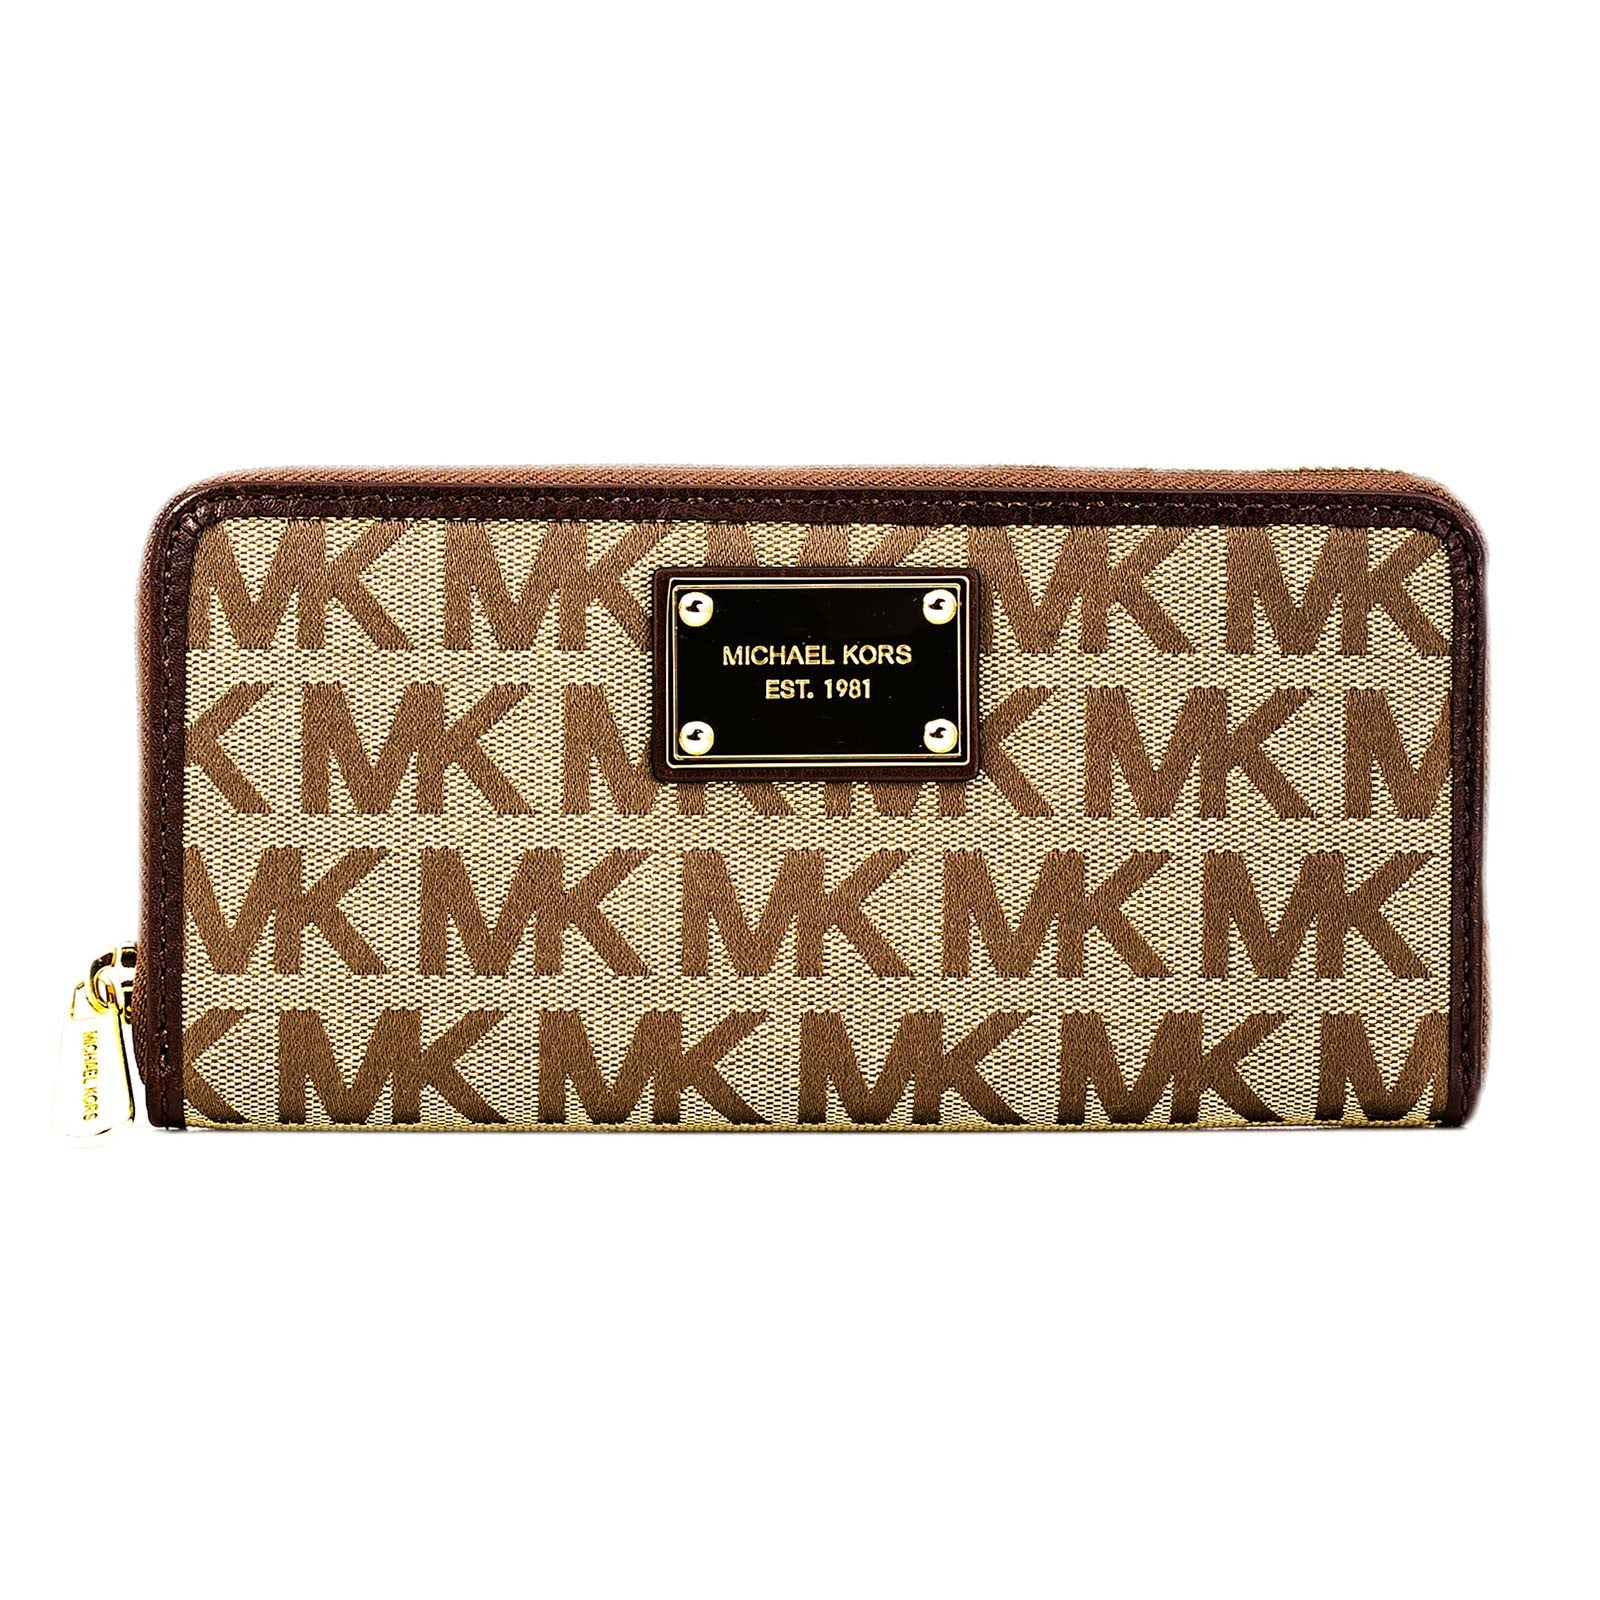 Michael Kors 32S12JSE3J-246 Women's Jet Set Brown Leather & Canvas Wallet